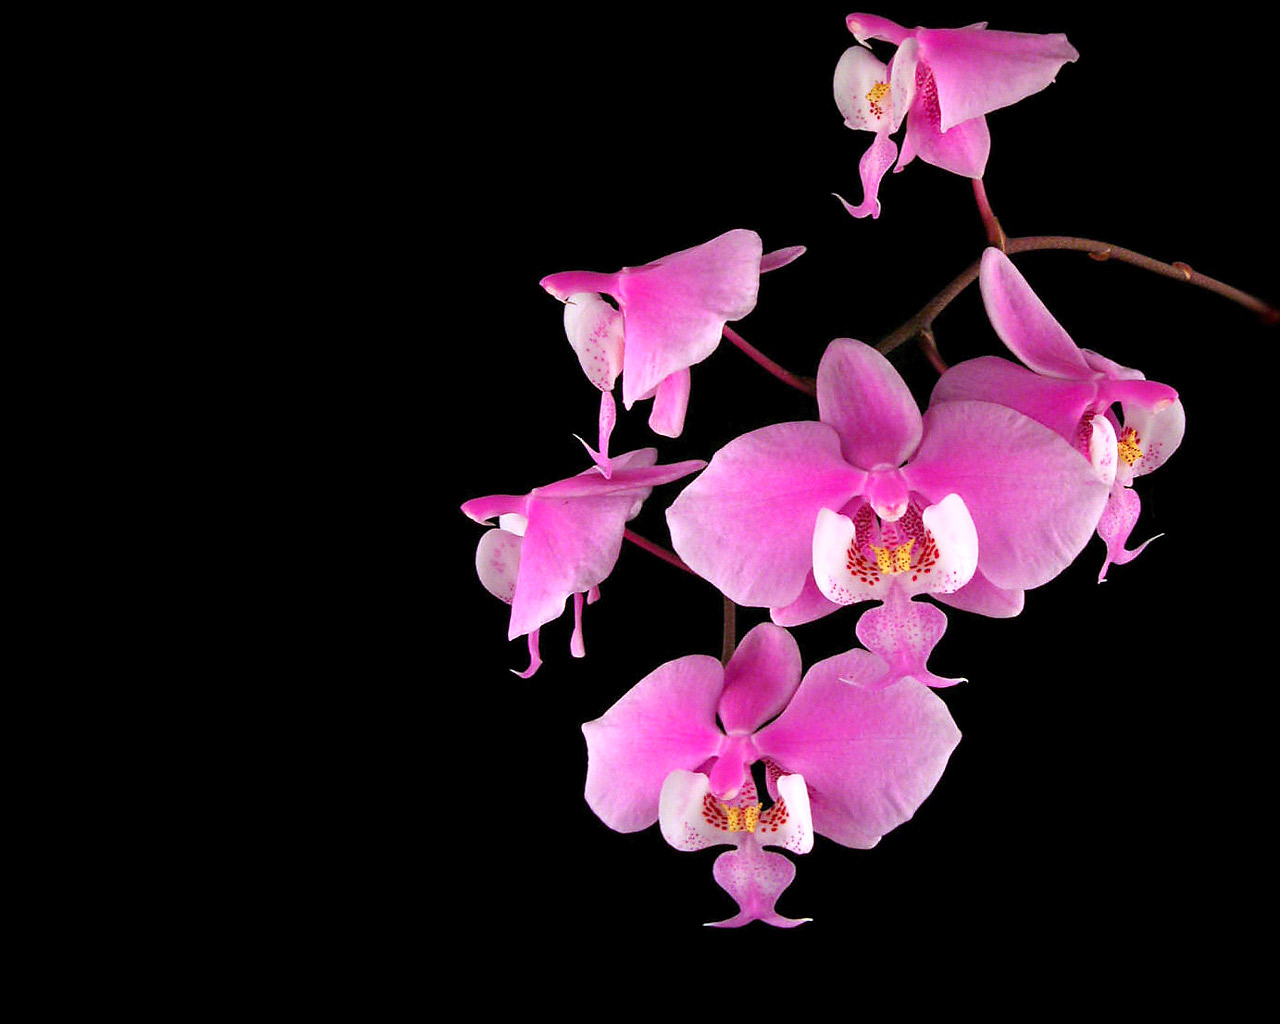 Pink Orchid Flower Wallpaper Widescreen